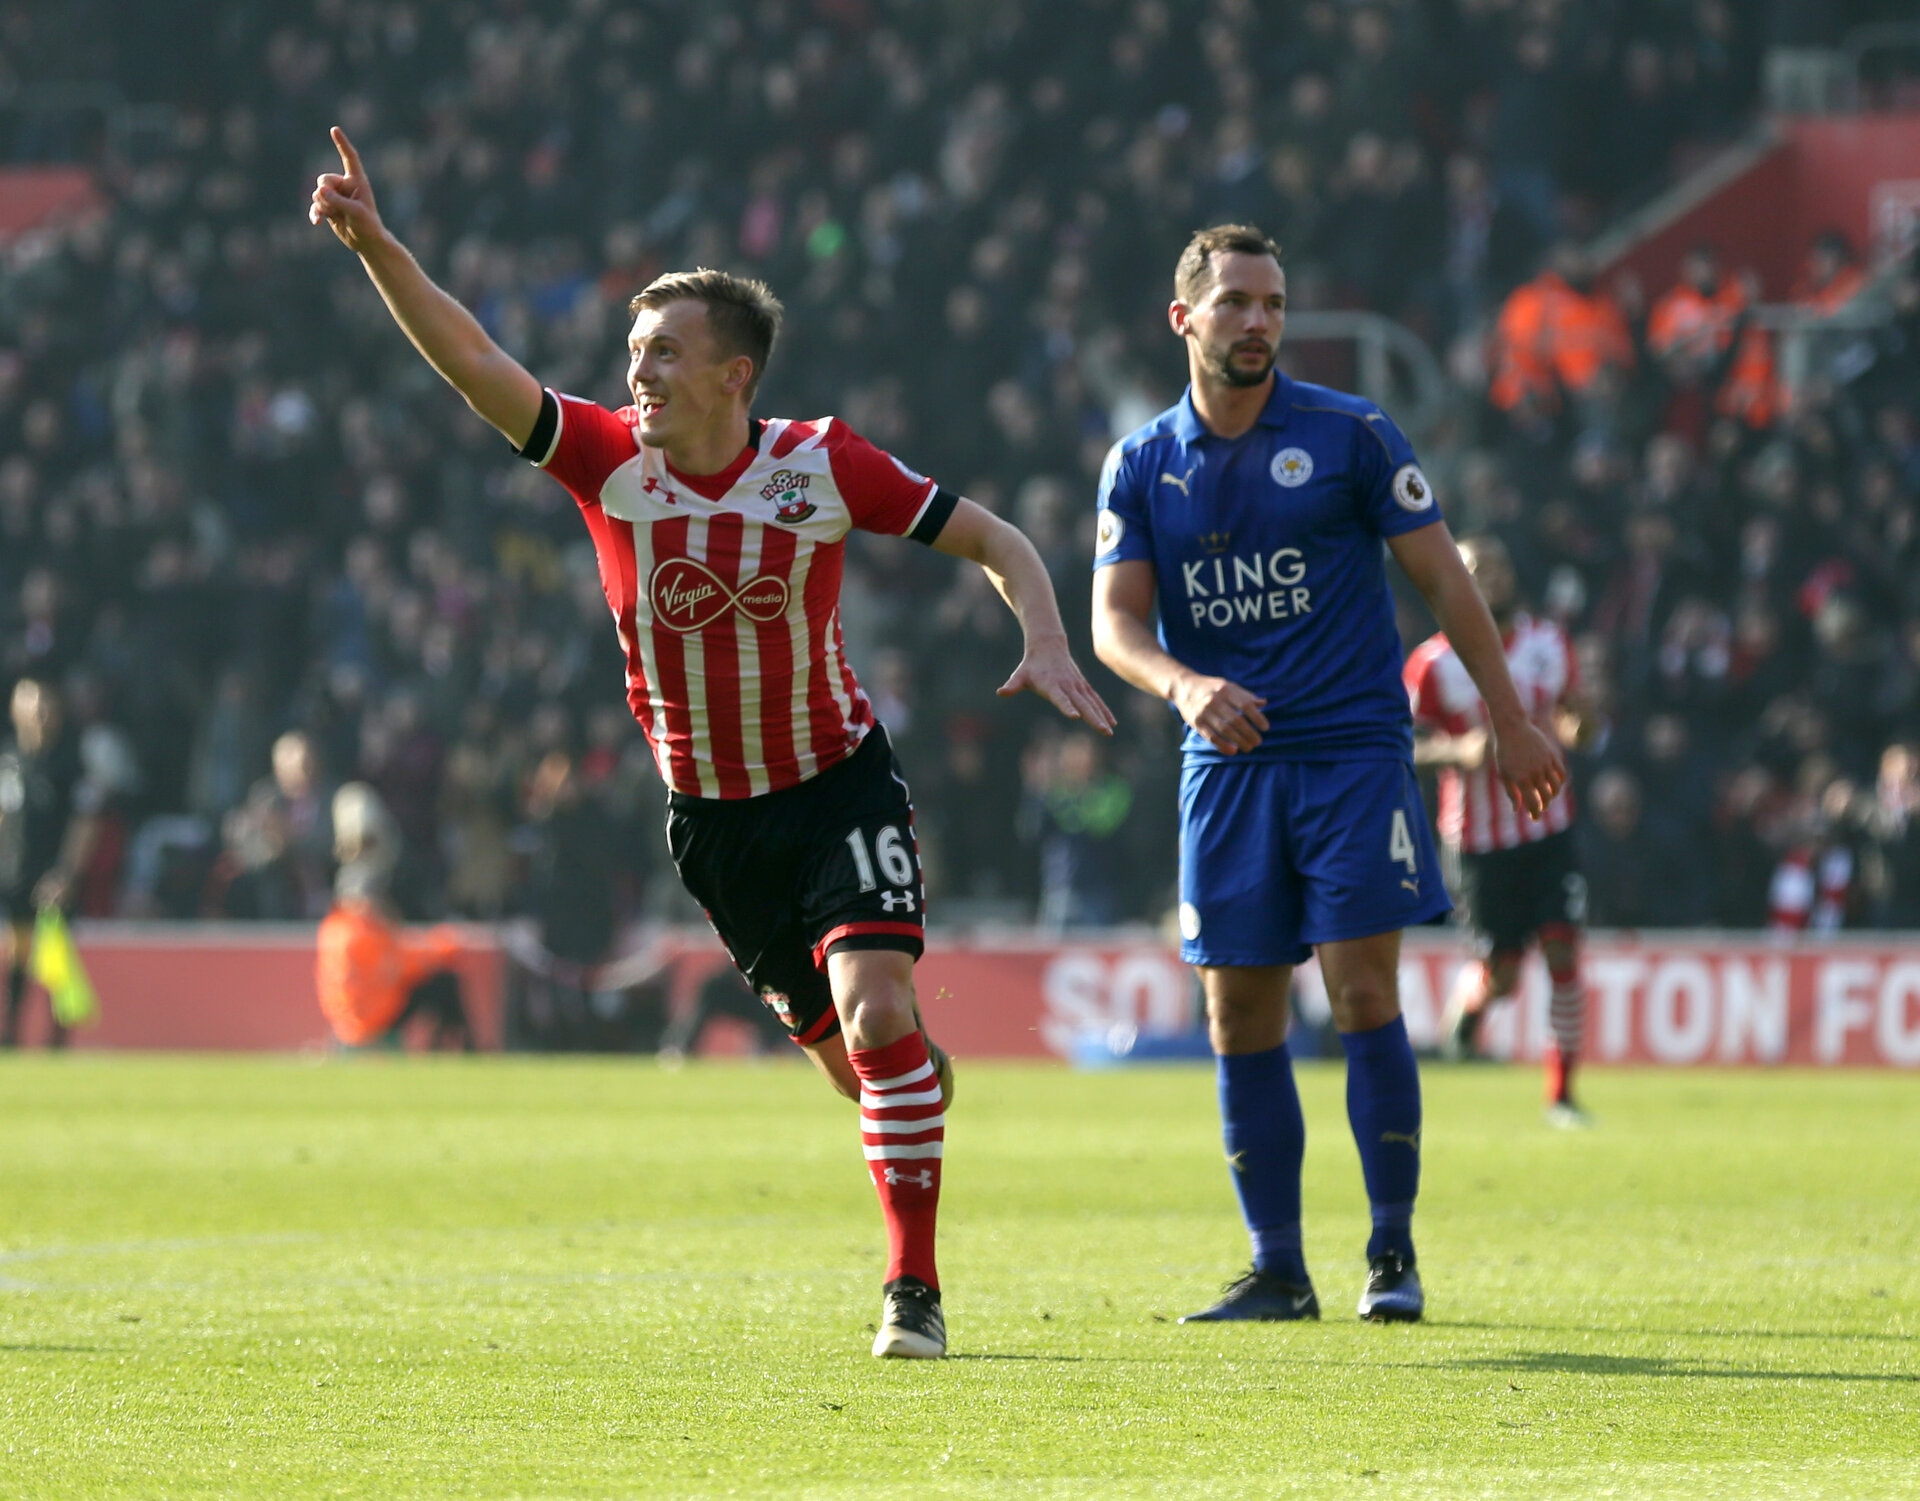 James Ward-Prowse (Southampton) celebrates making it 1-0 during the Premier League match between Southampton and Leicester City at St Mary's Stadium, Southampton, England on 22 January 2017.